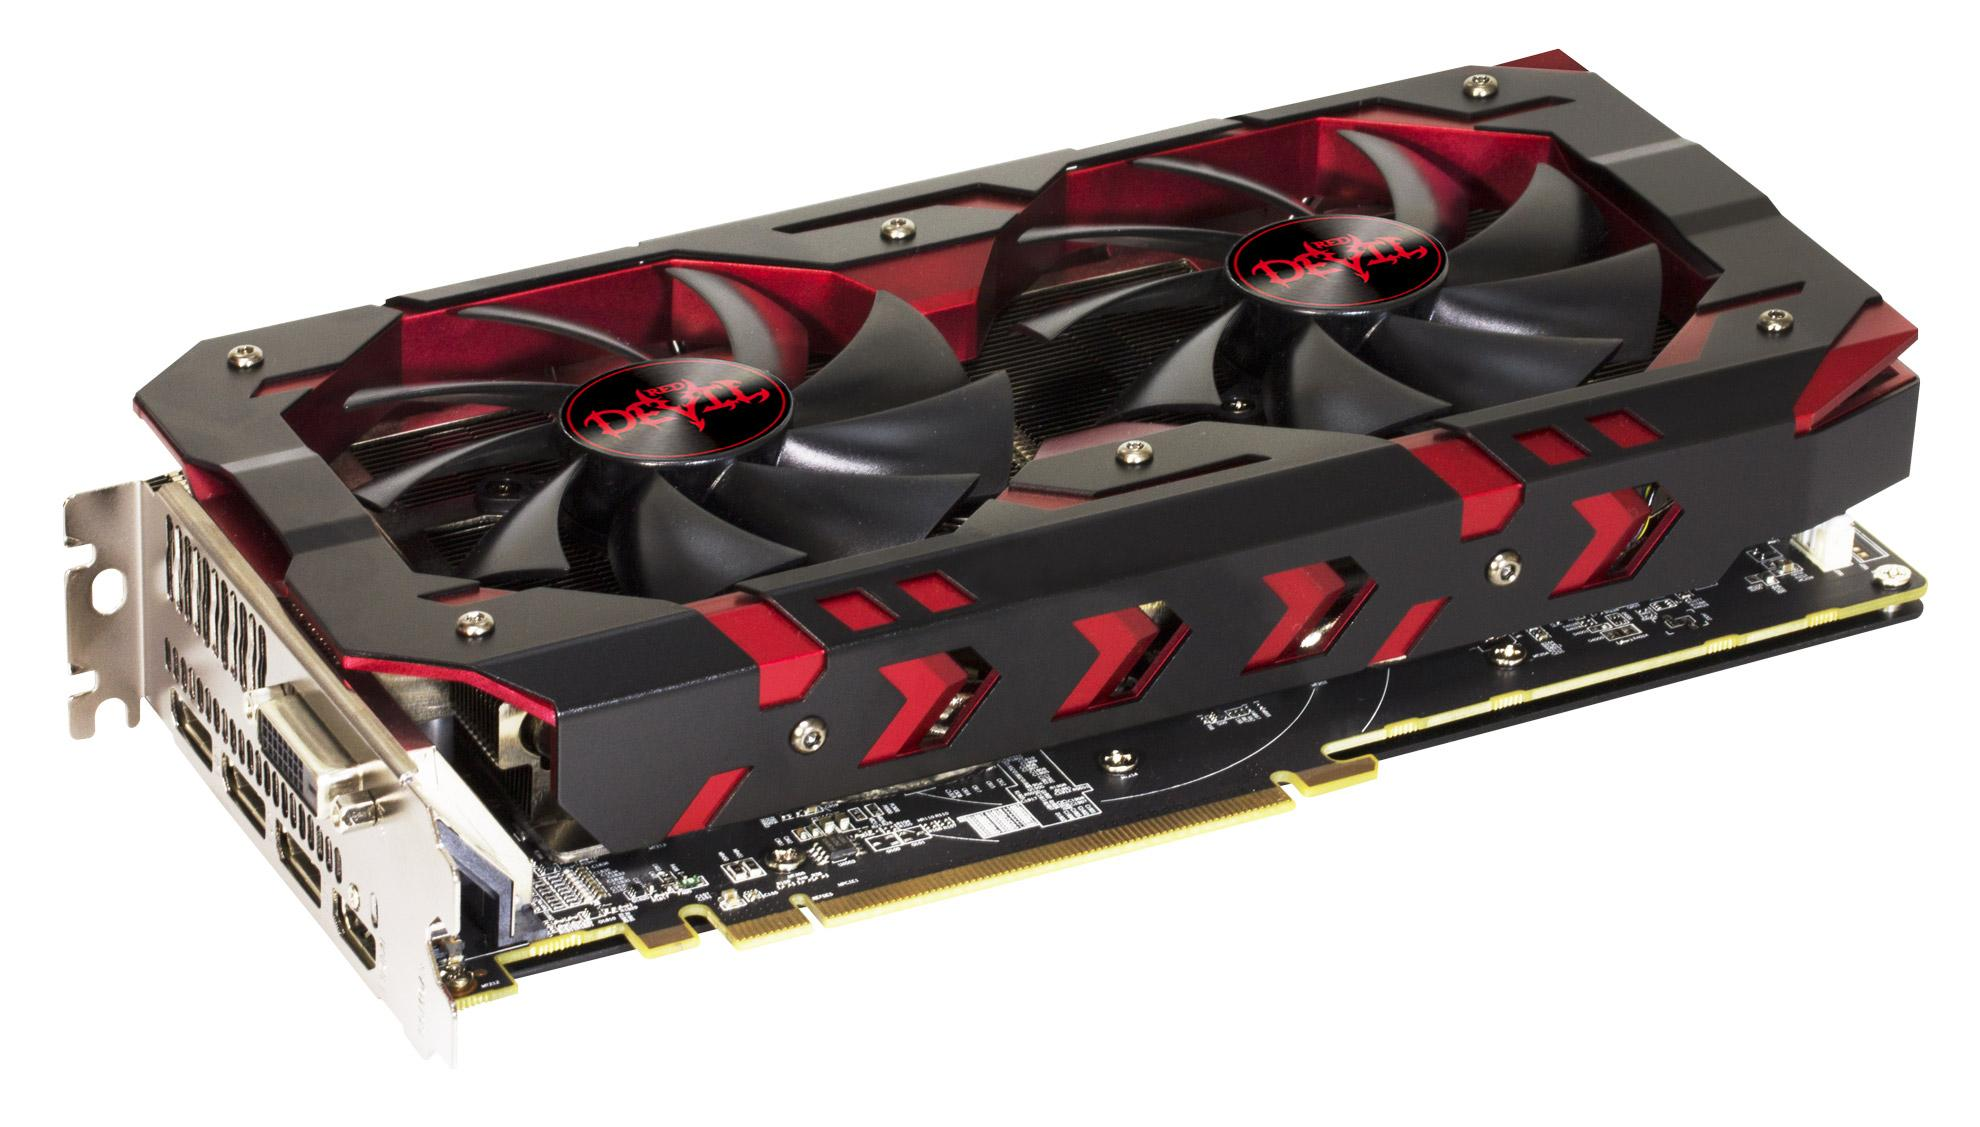 PowerColor正式推出Radeon RX 500 Red Devil系列顯示卡 - XFastest - PowerColor-RX-580-Red-Devil-2.jpg